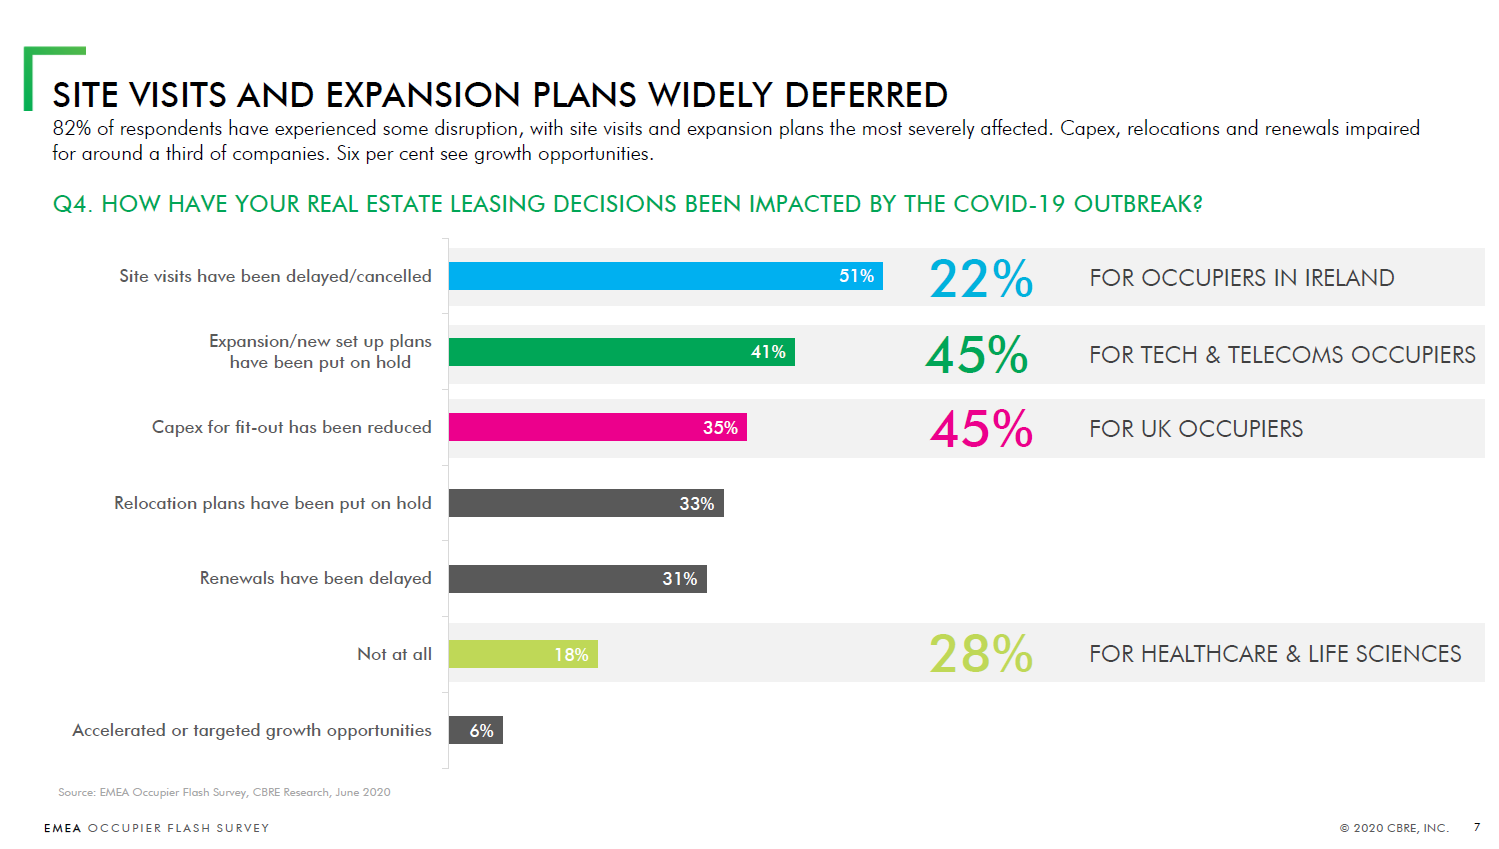 CBRE EMEA Occupier Flash Survey